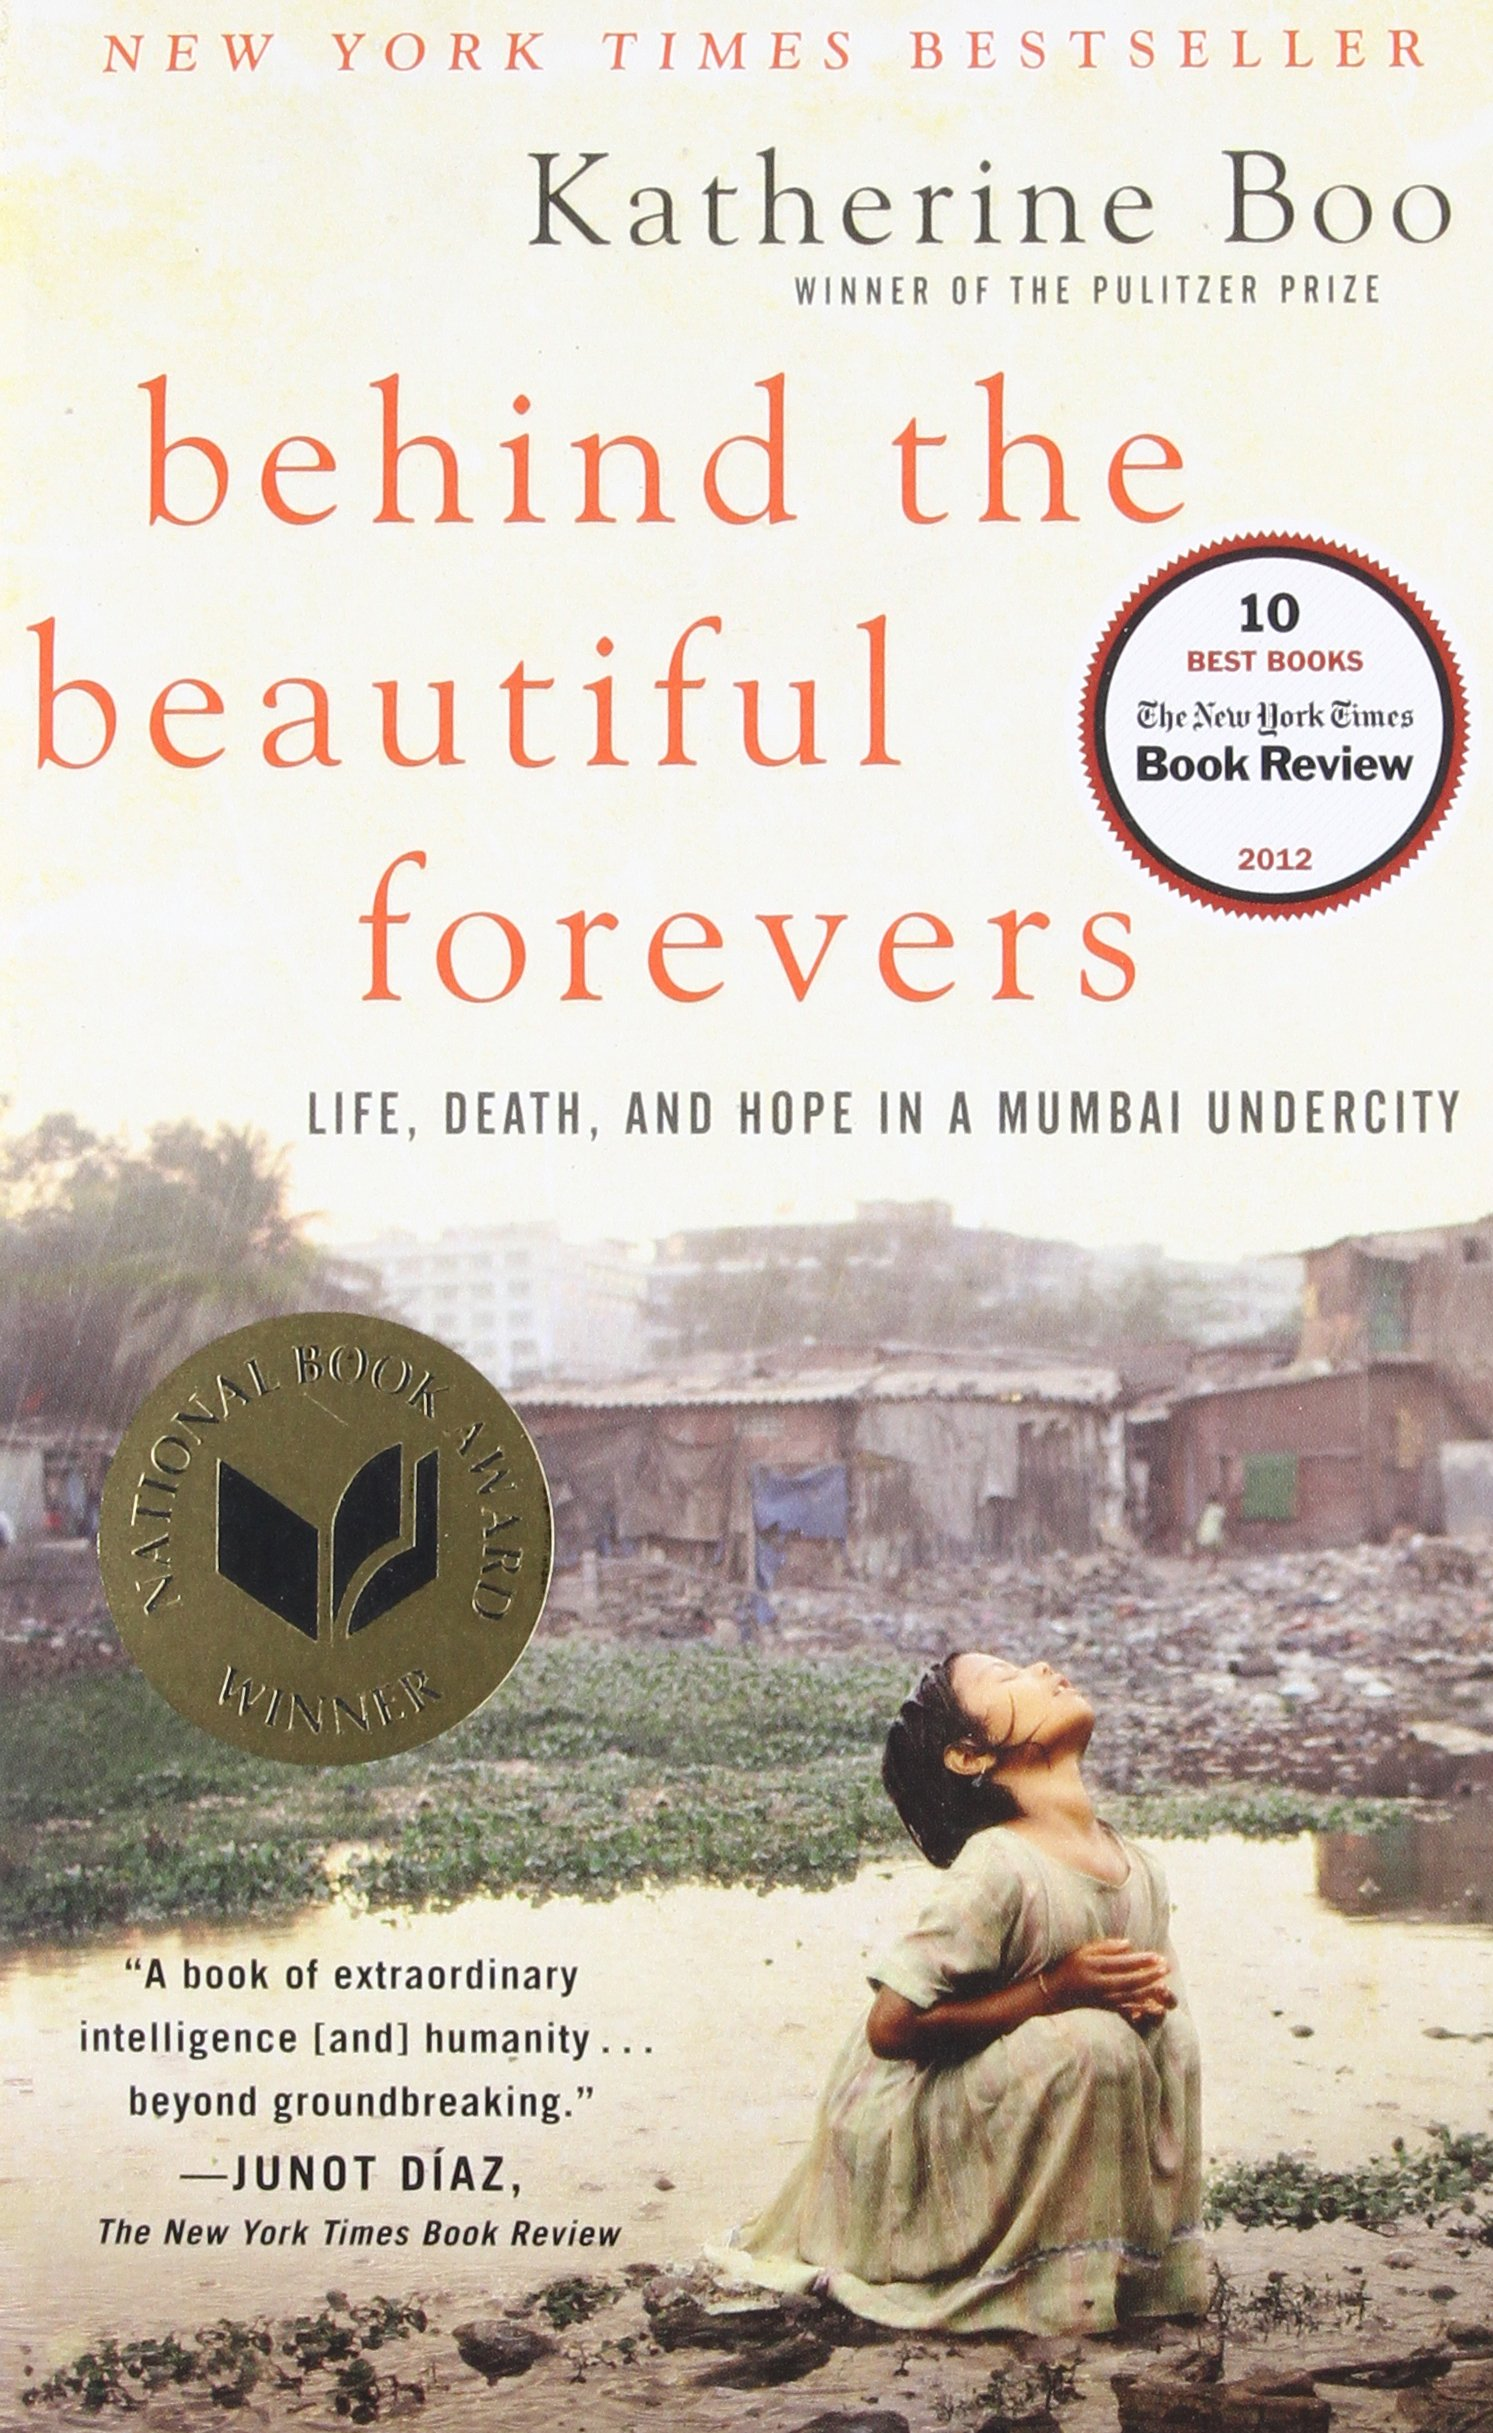 Behind the beautiful forevers life death and hope in a mumbai behind the beautiful forevers life death and hope in a mumbai undercity katherine boo 8601420068988 amazon books izmirmasajfo Gallery